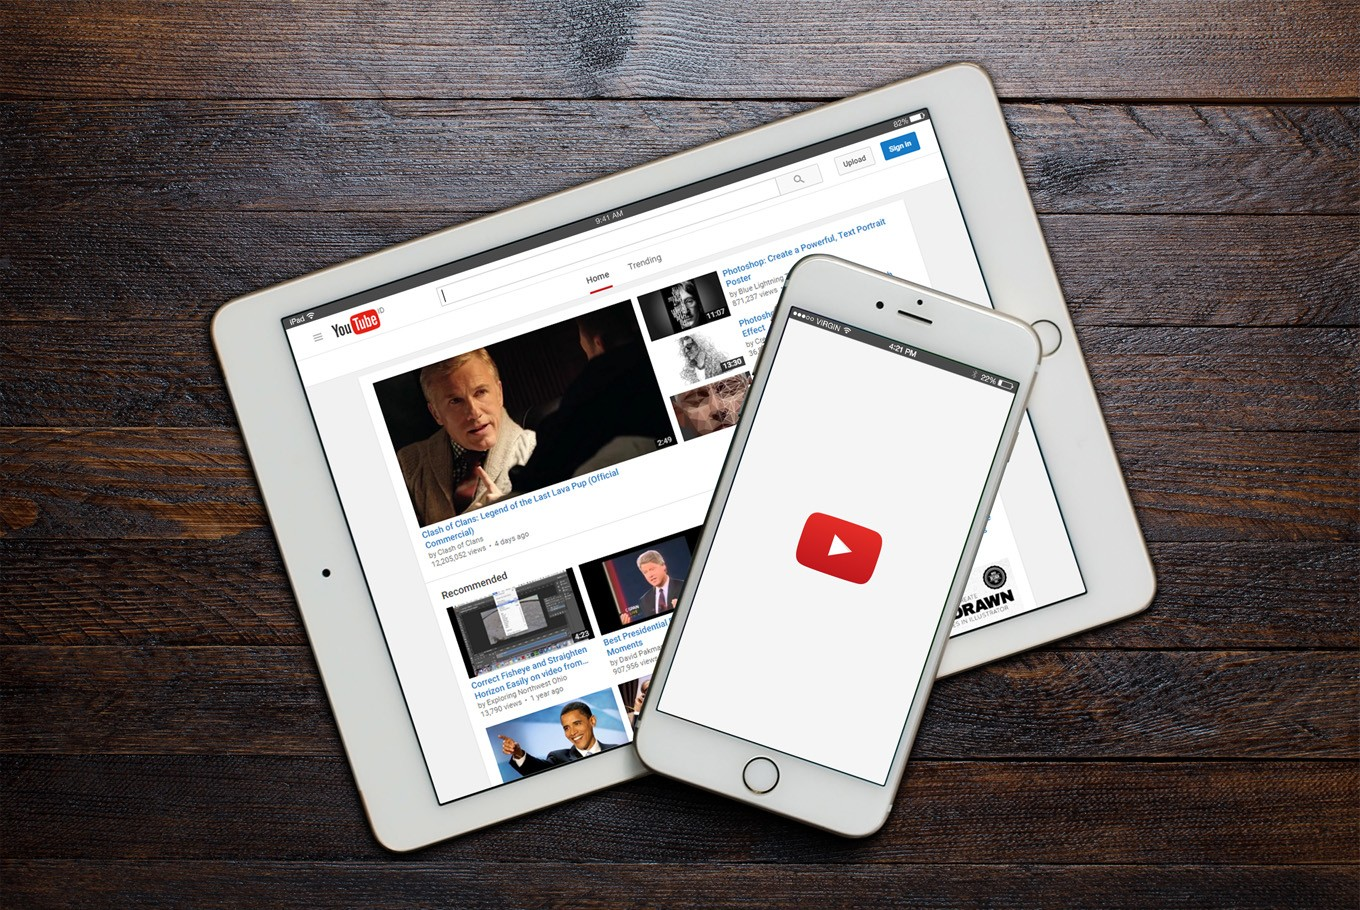 YouTube most popular app for Indonesian smartphones users